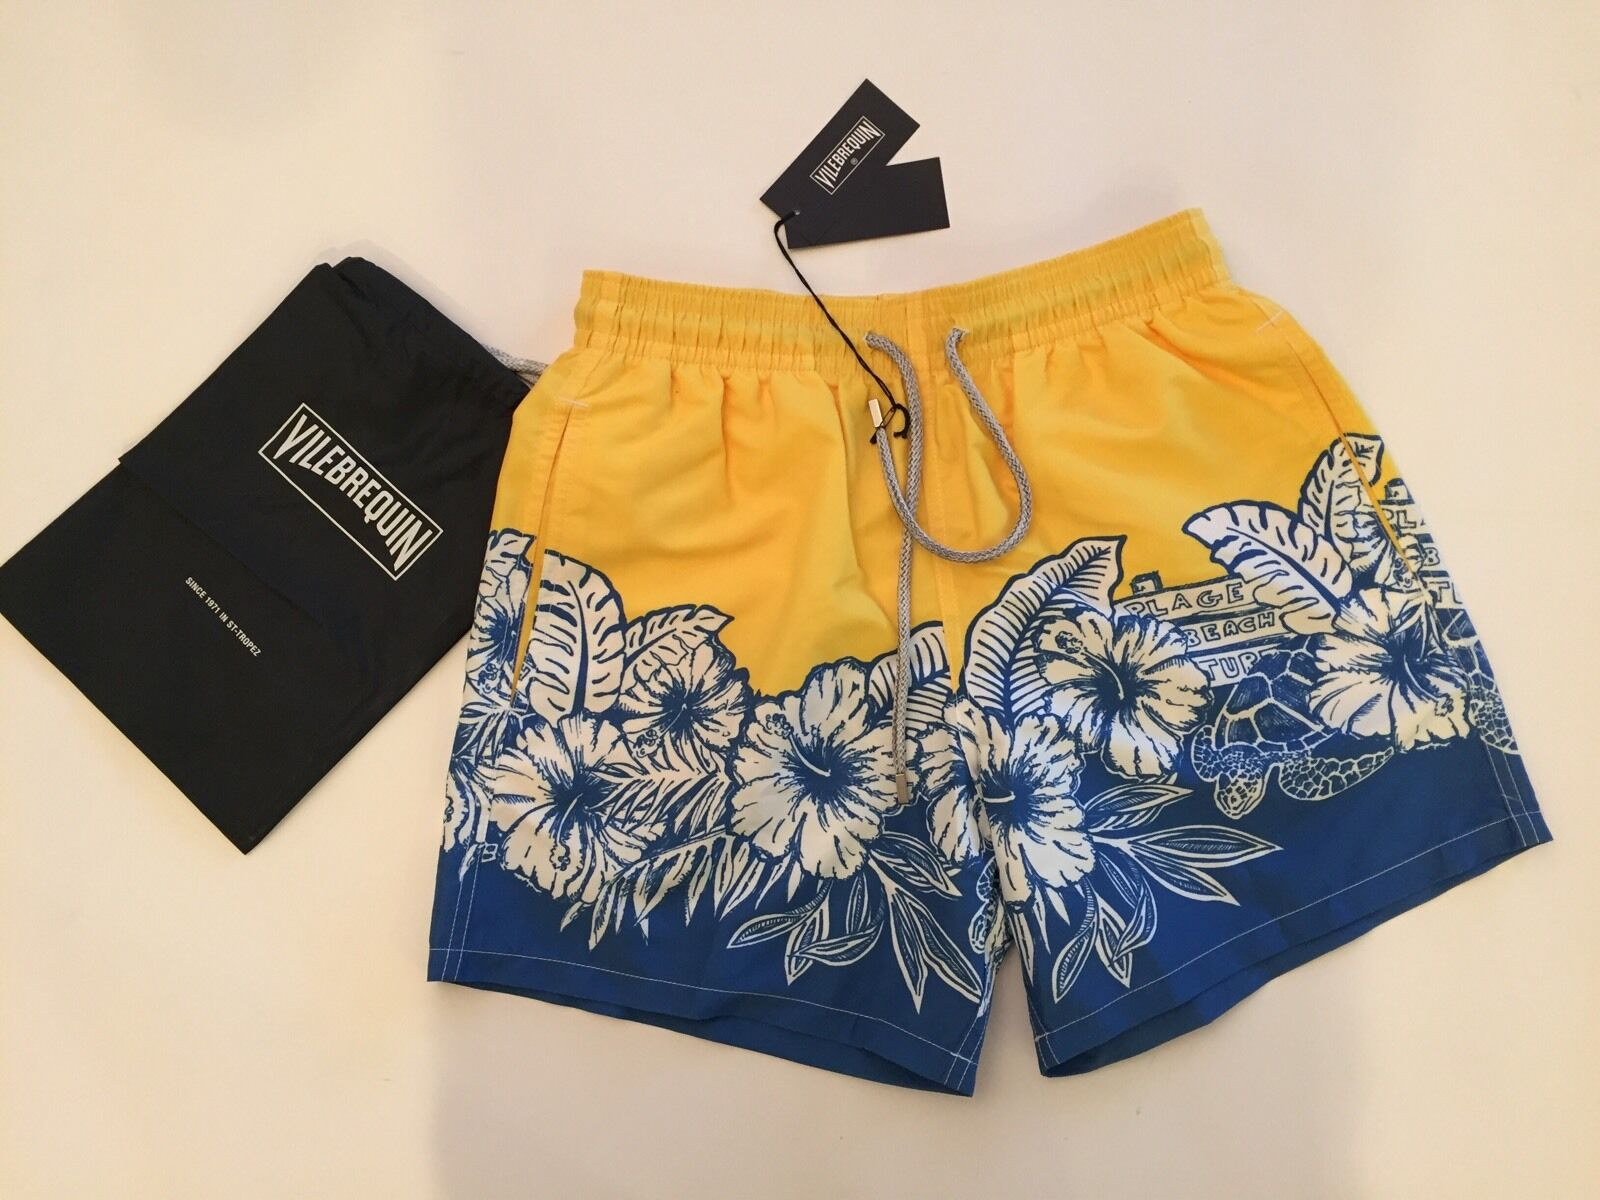 New w Tags & Bag Authentic Vilebrequin Moorea Yellow Swim Trunks - Men XL